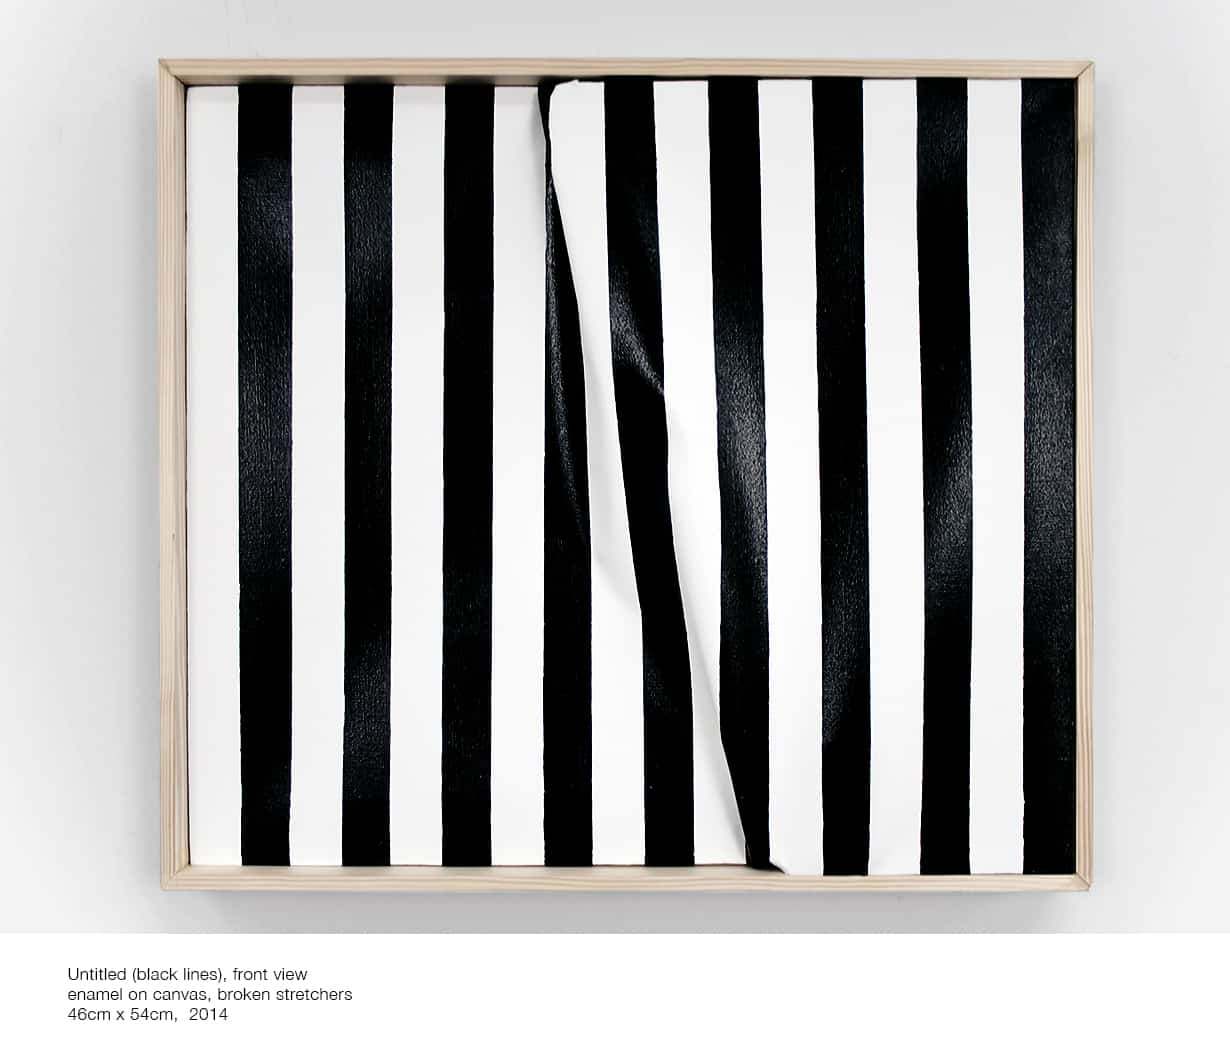 Alicja Gaskon, Untitled (black lines), front view, courtesy of the artist